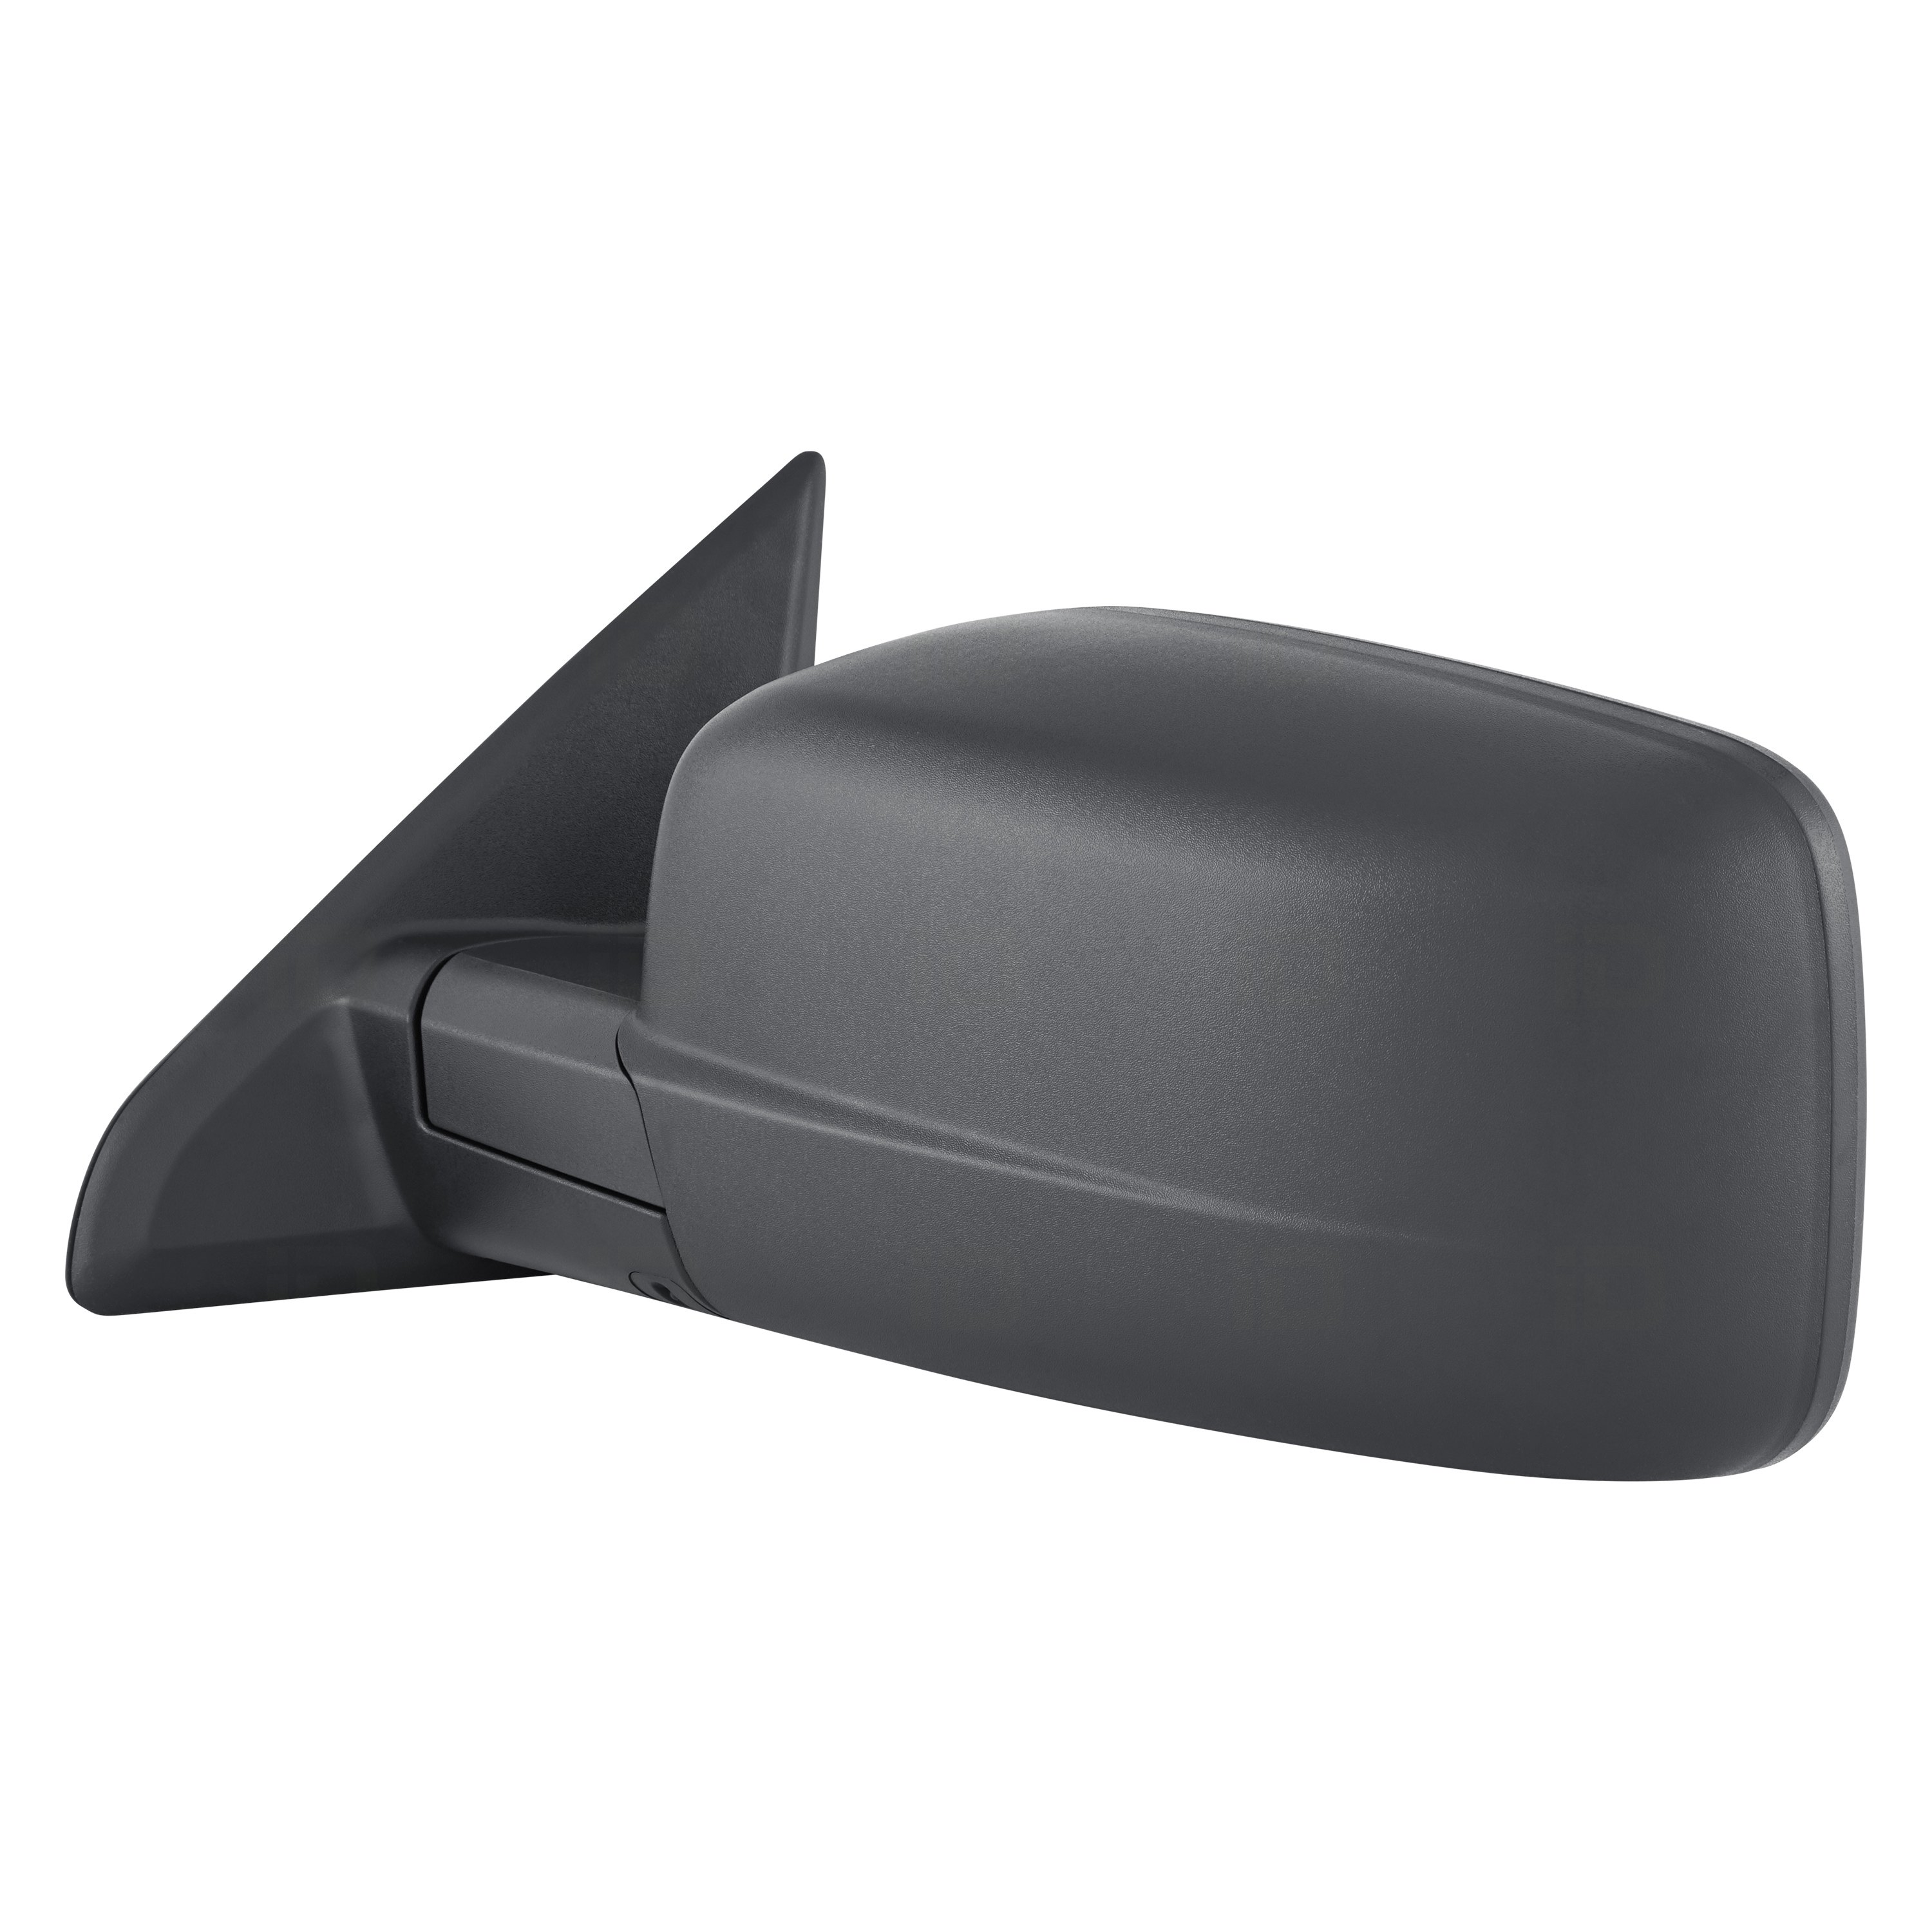 AUTOMUTO Black Driver Side View Mirror Power Adjustment Non-Folding Non-heated Compatible with 2006-2013 Chevrolet Impala 2014-2015 Chevrolet Impala Limited